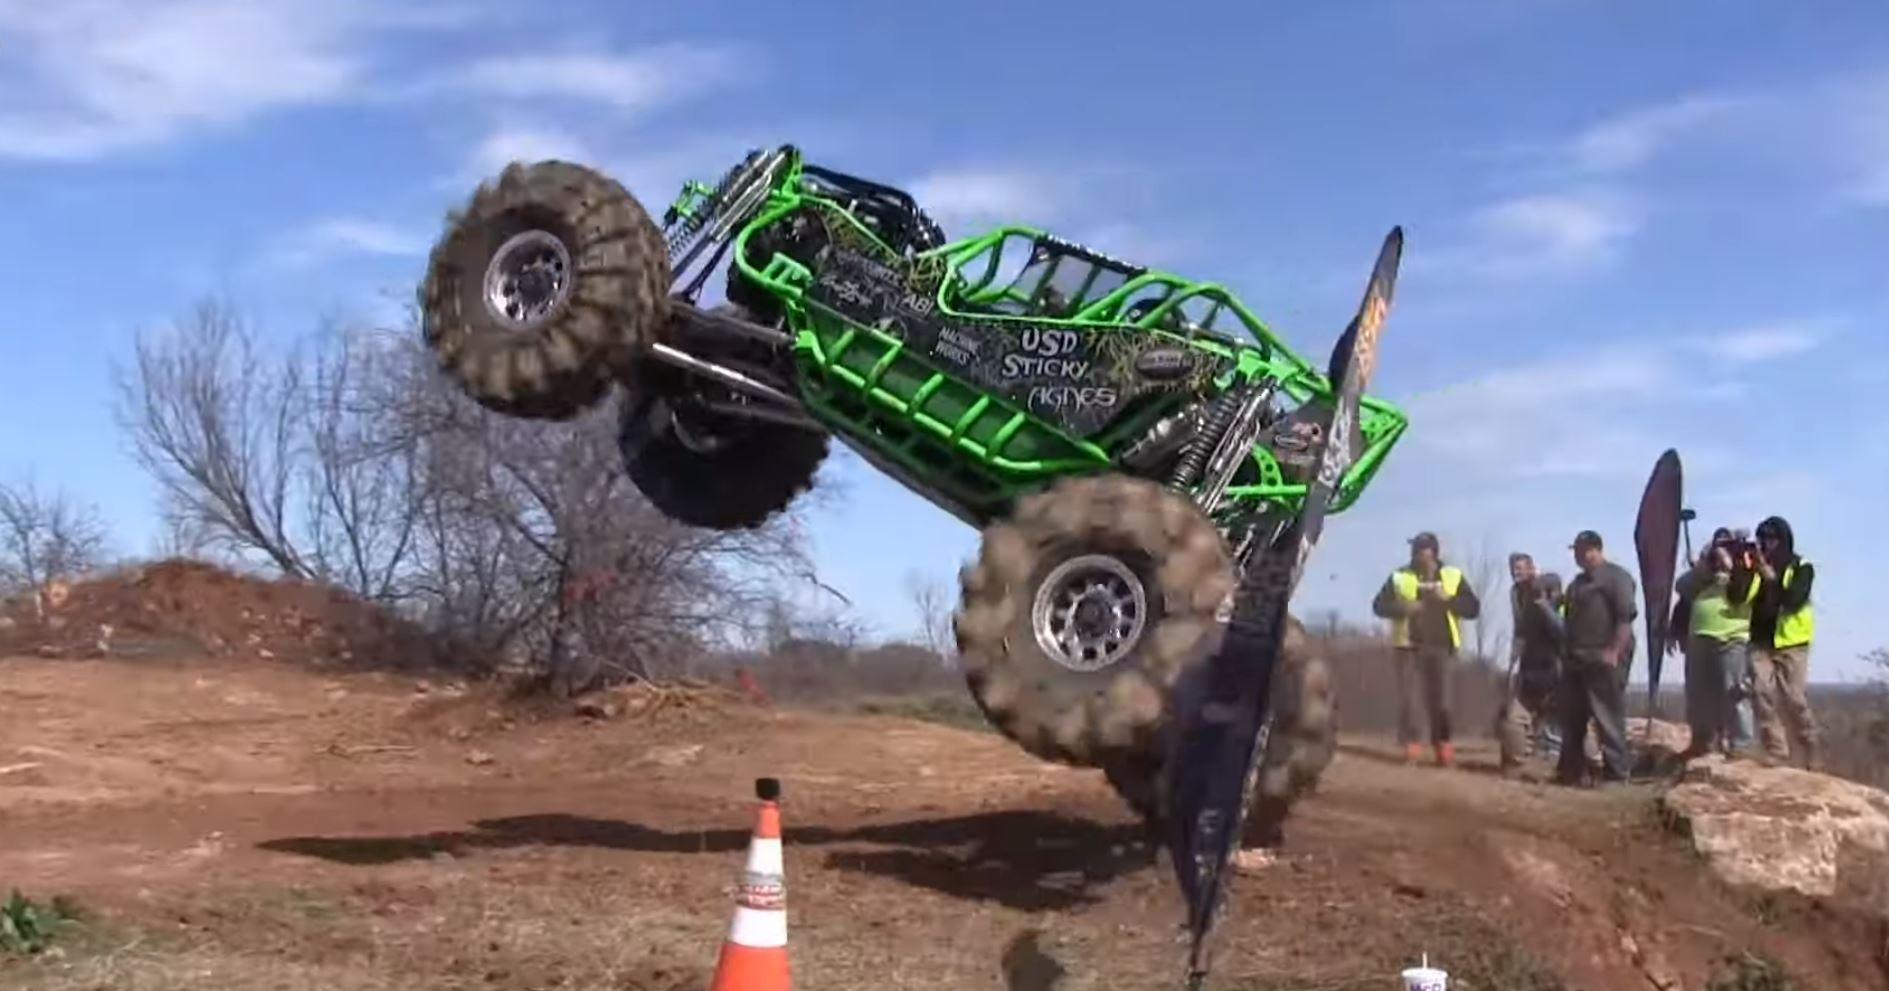 High Flying Rock Bouncers Take On The Dirt Hill Climb At The Southern Rock Race